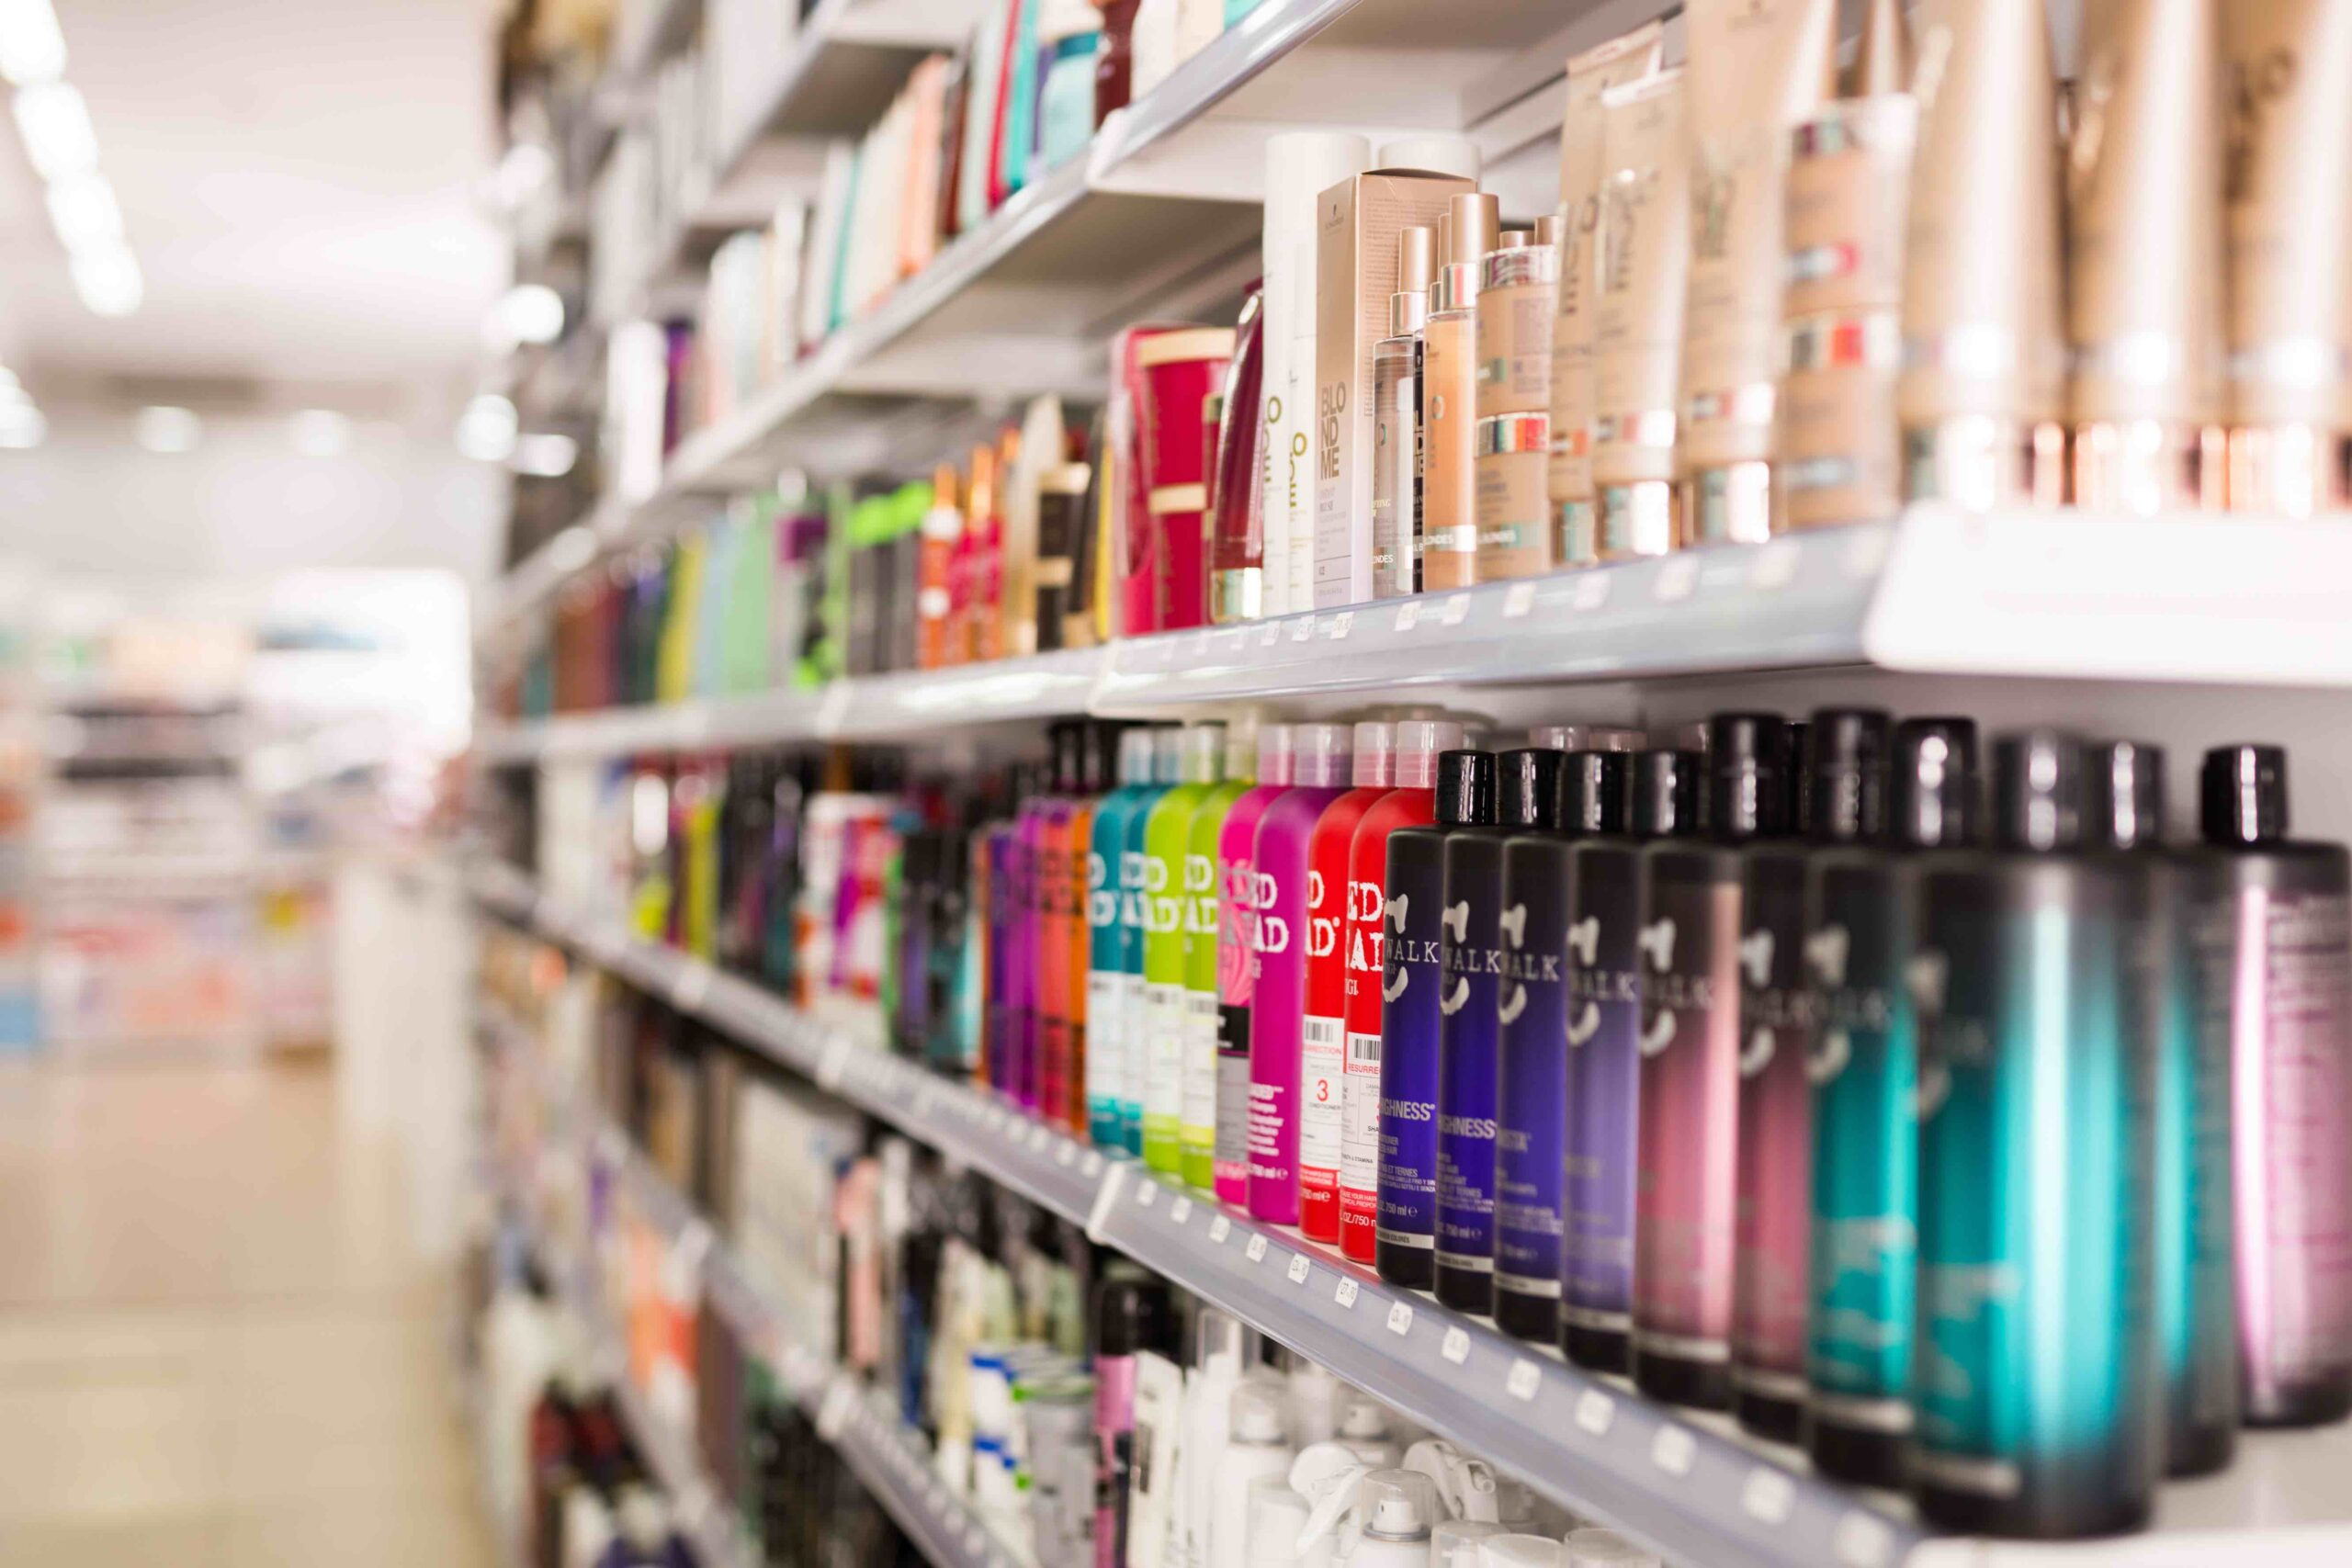 Plastic bottles of various hair care products on store shelves